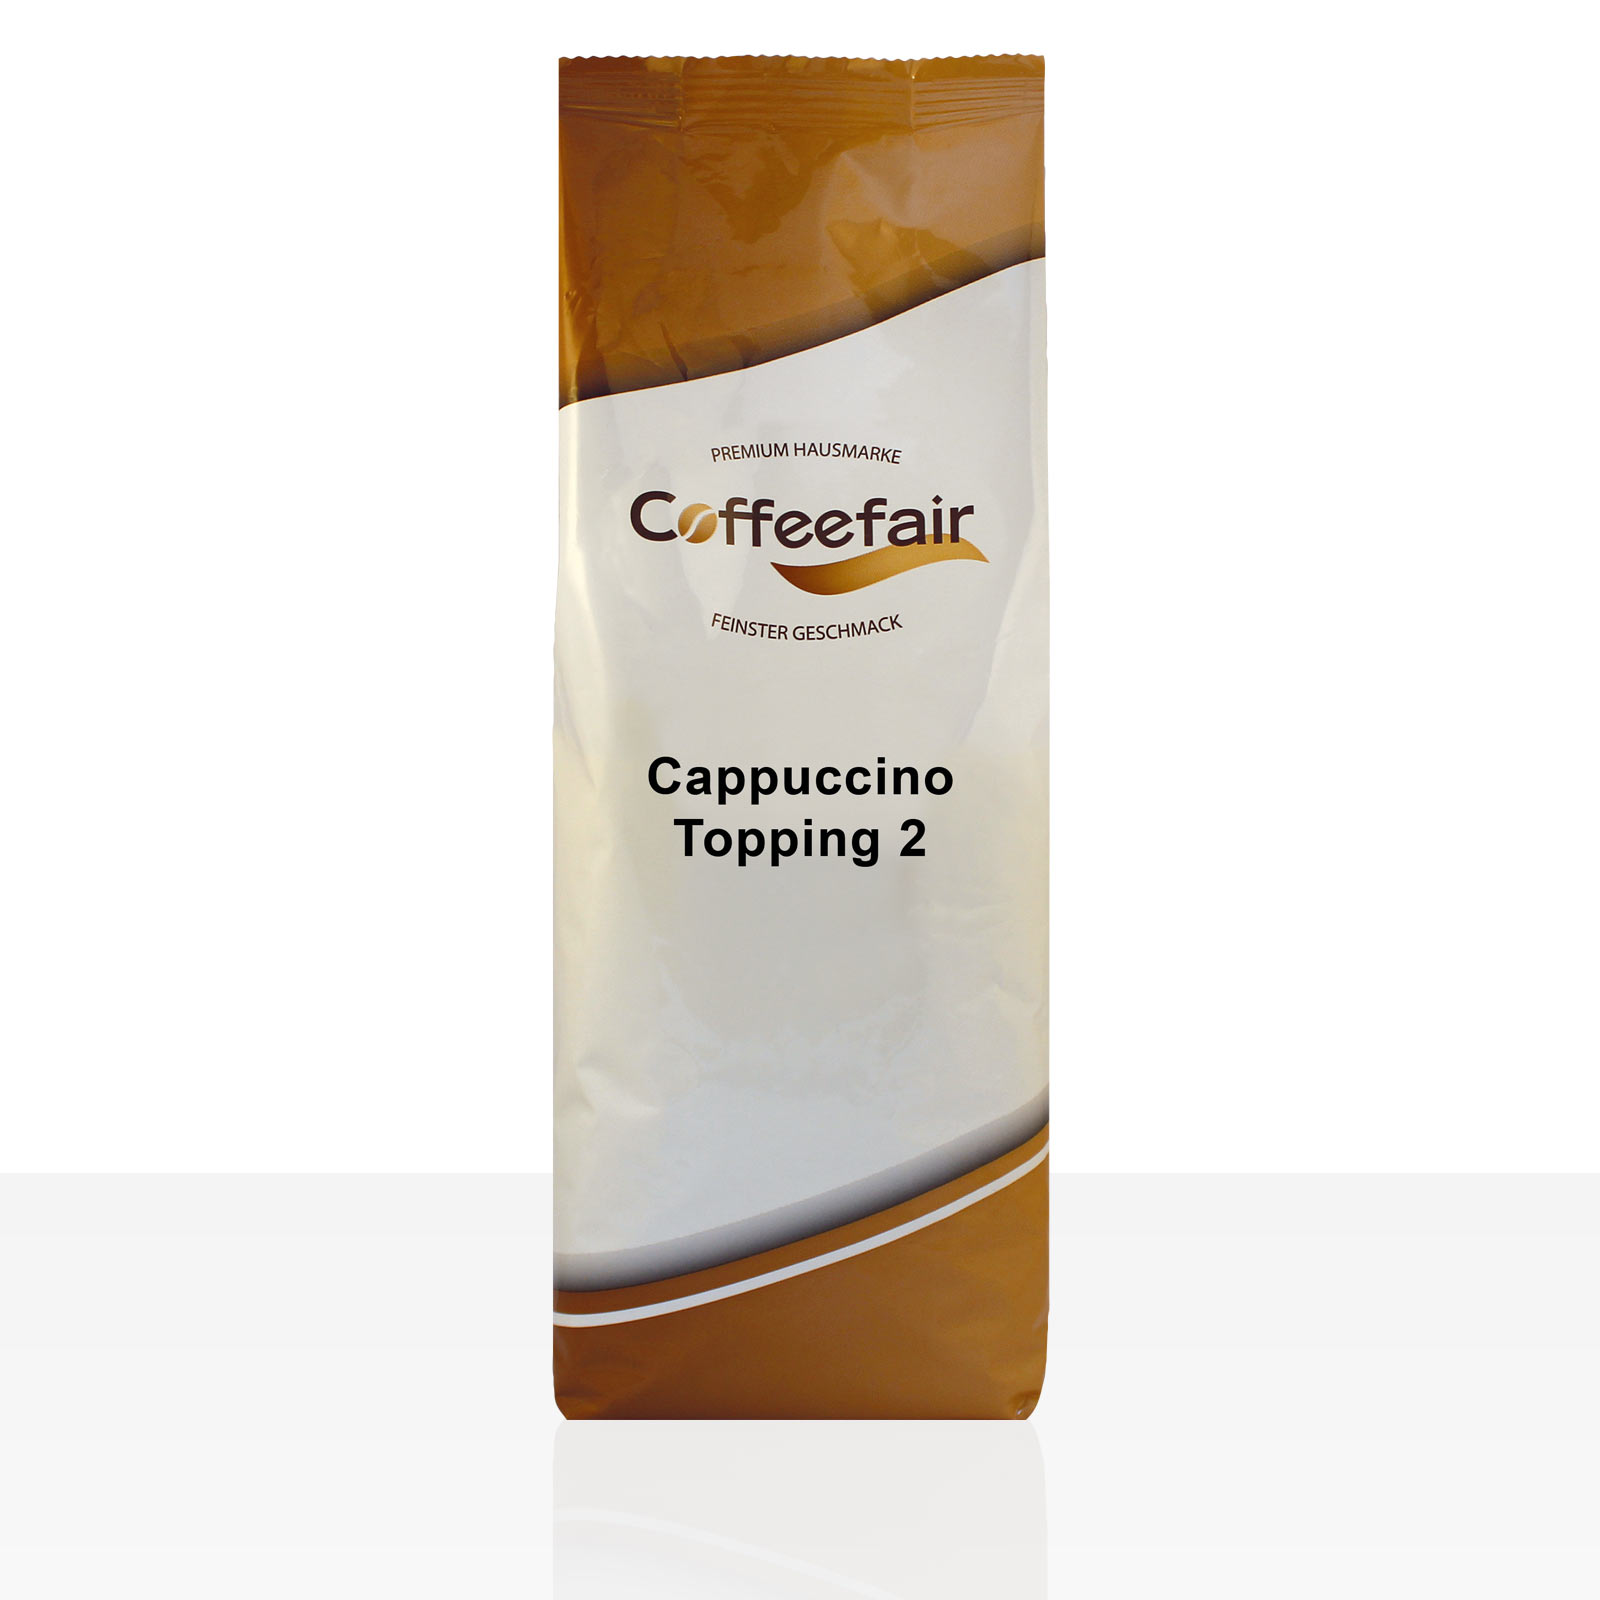 Coffeefair Cappuccino Topping II - 10 x 1kg Milchpulver Instant-Milch (Neues Design)